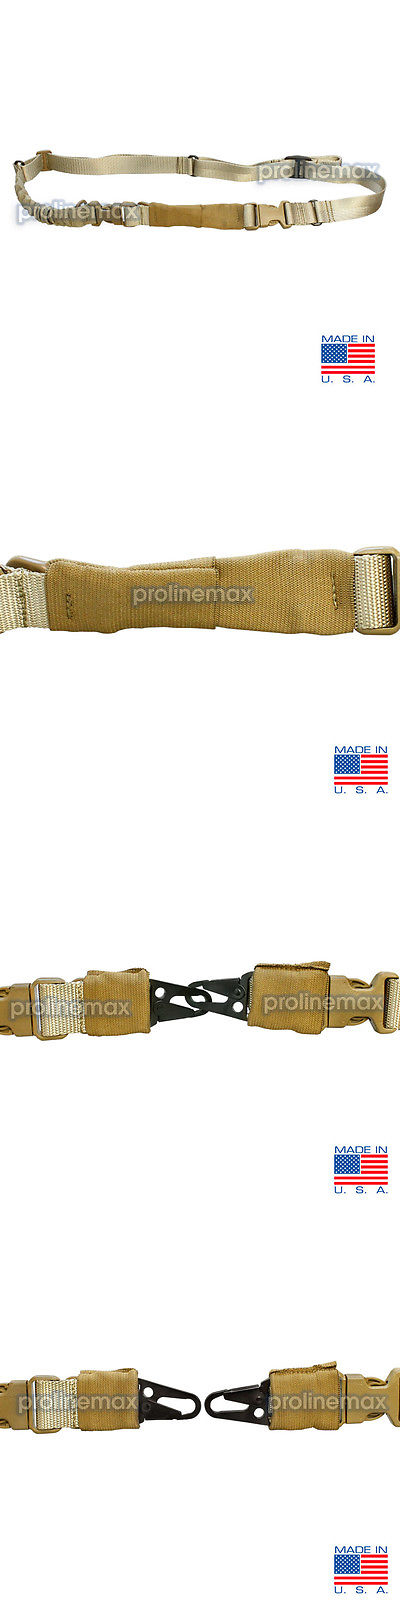 Tactical Slings 177901: Tan Tactical Stryke Transition-Loc Quick Adjust Bungee Rifle Sling Made In Usa -> BUY IT NOW ONLY: $33.94 on eBay!